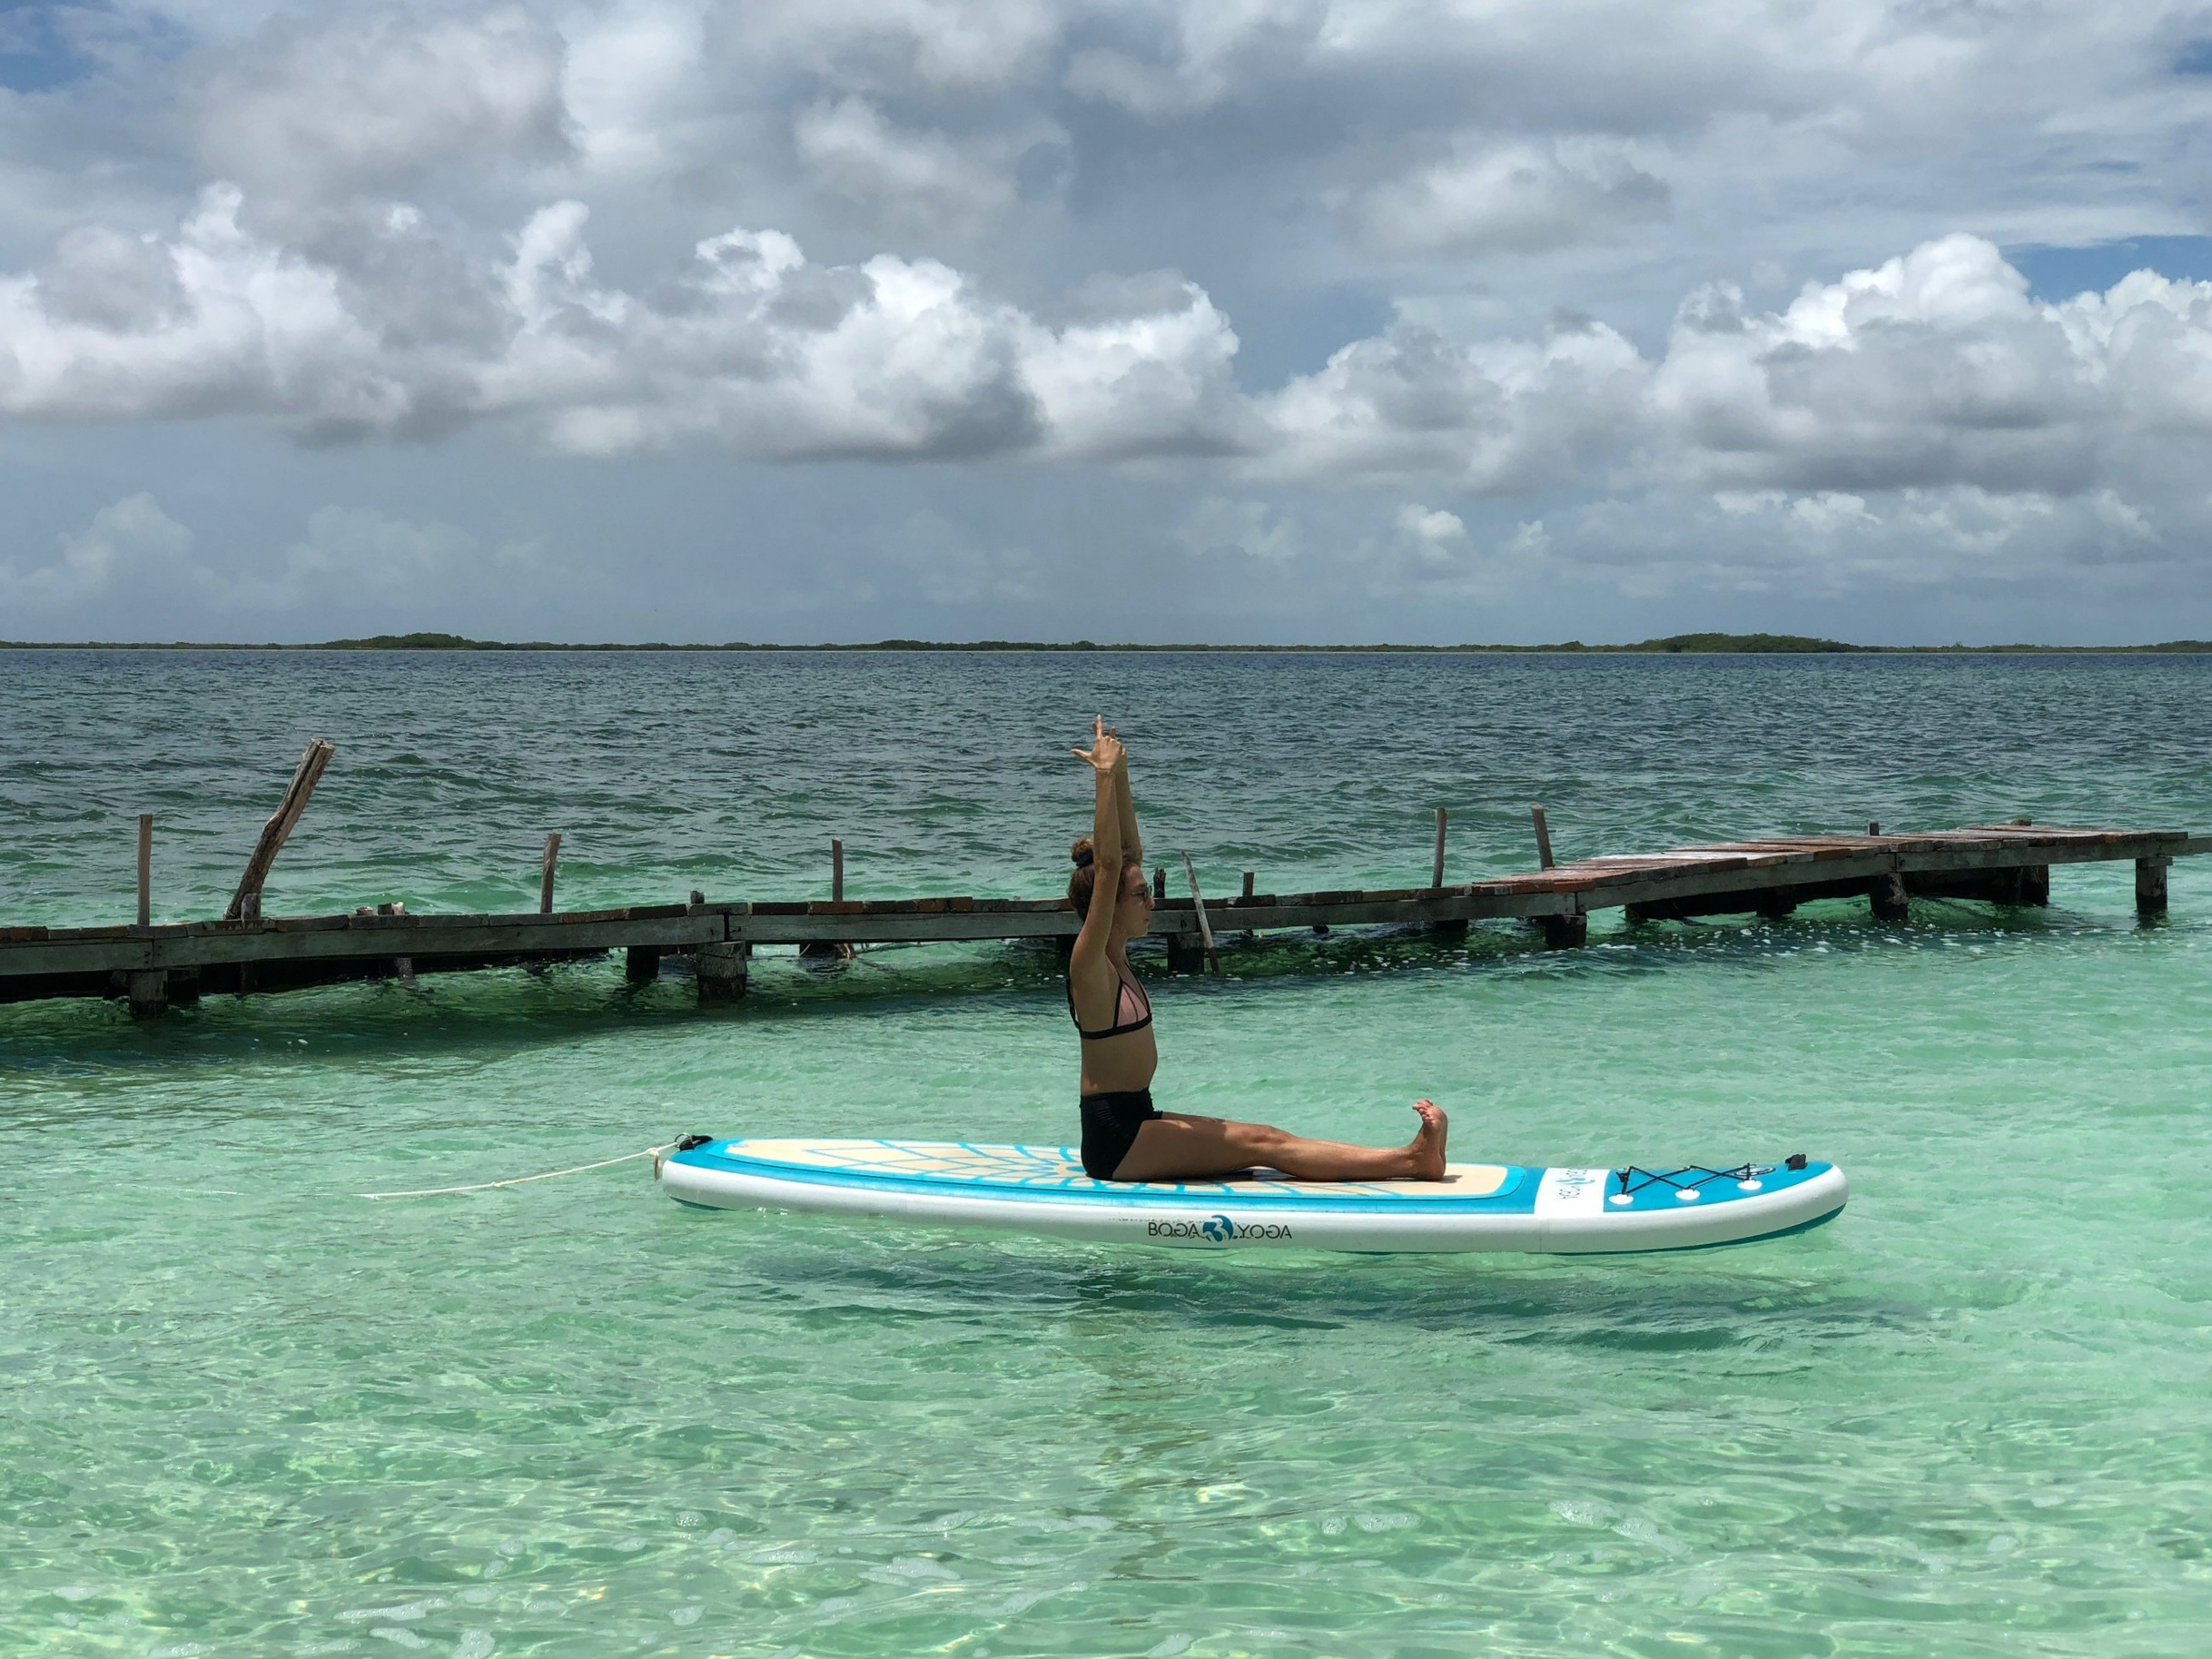 SUP Yoga is a fun way to challenge your balance while enjoying an active day on the water.